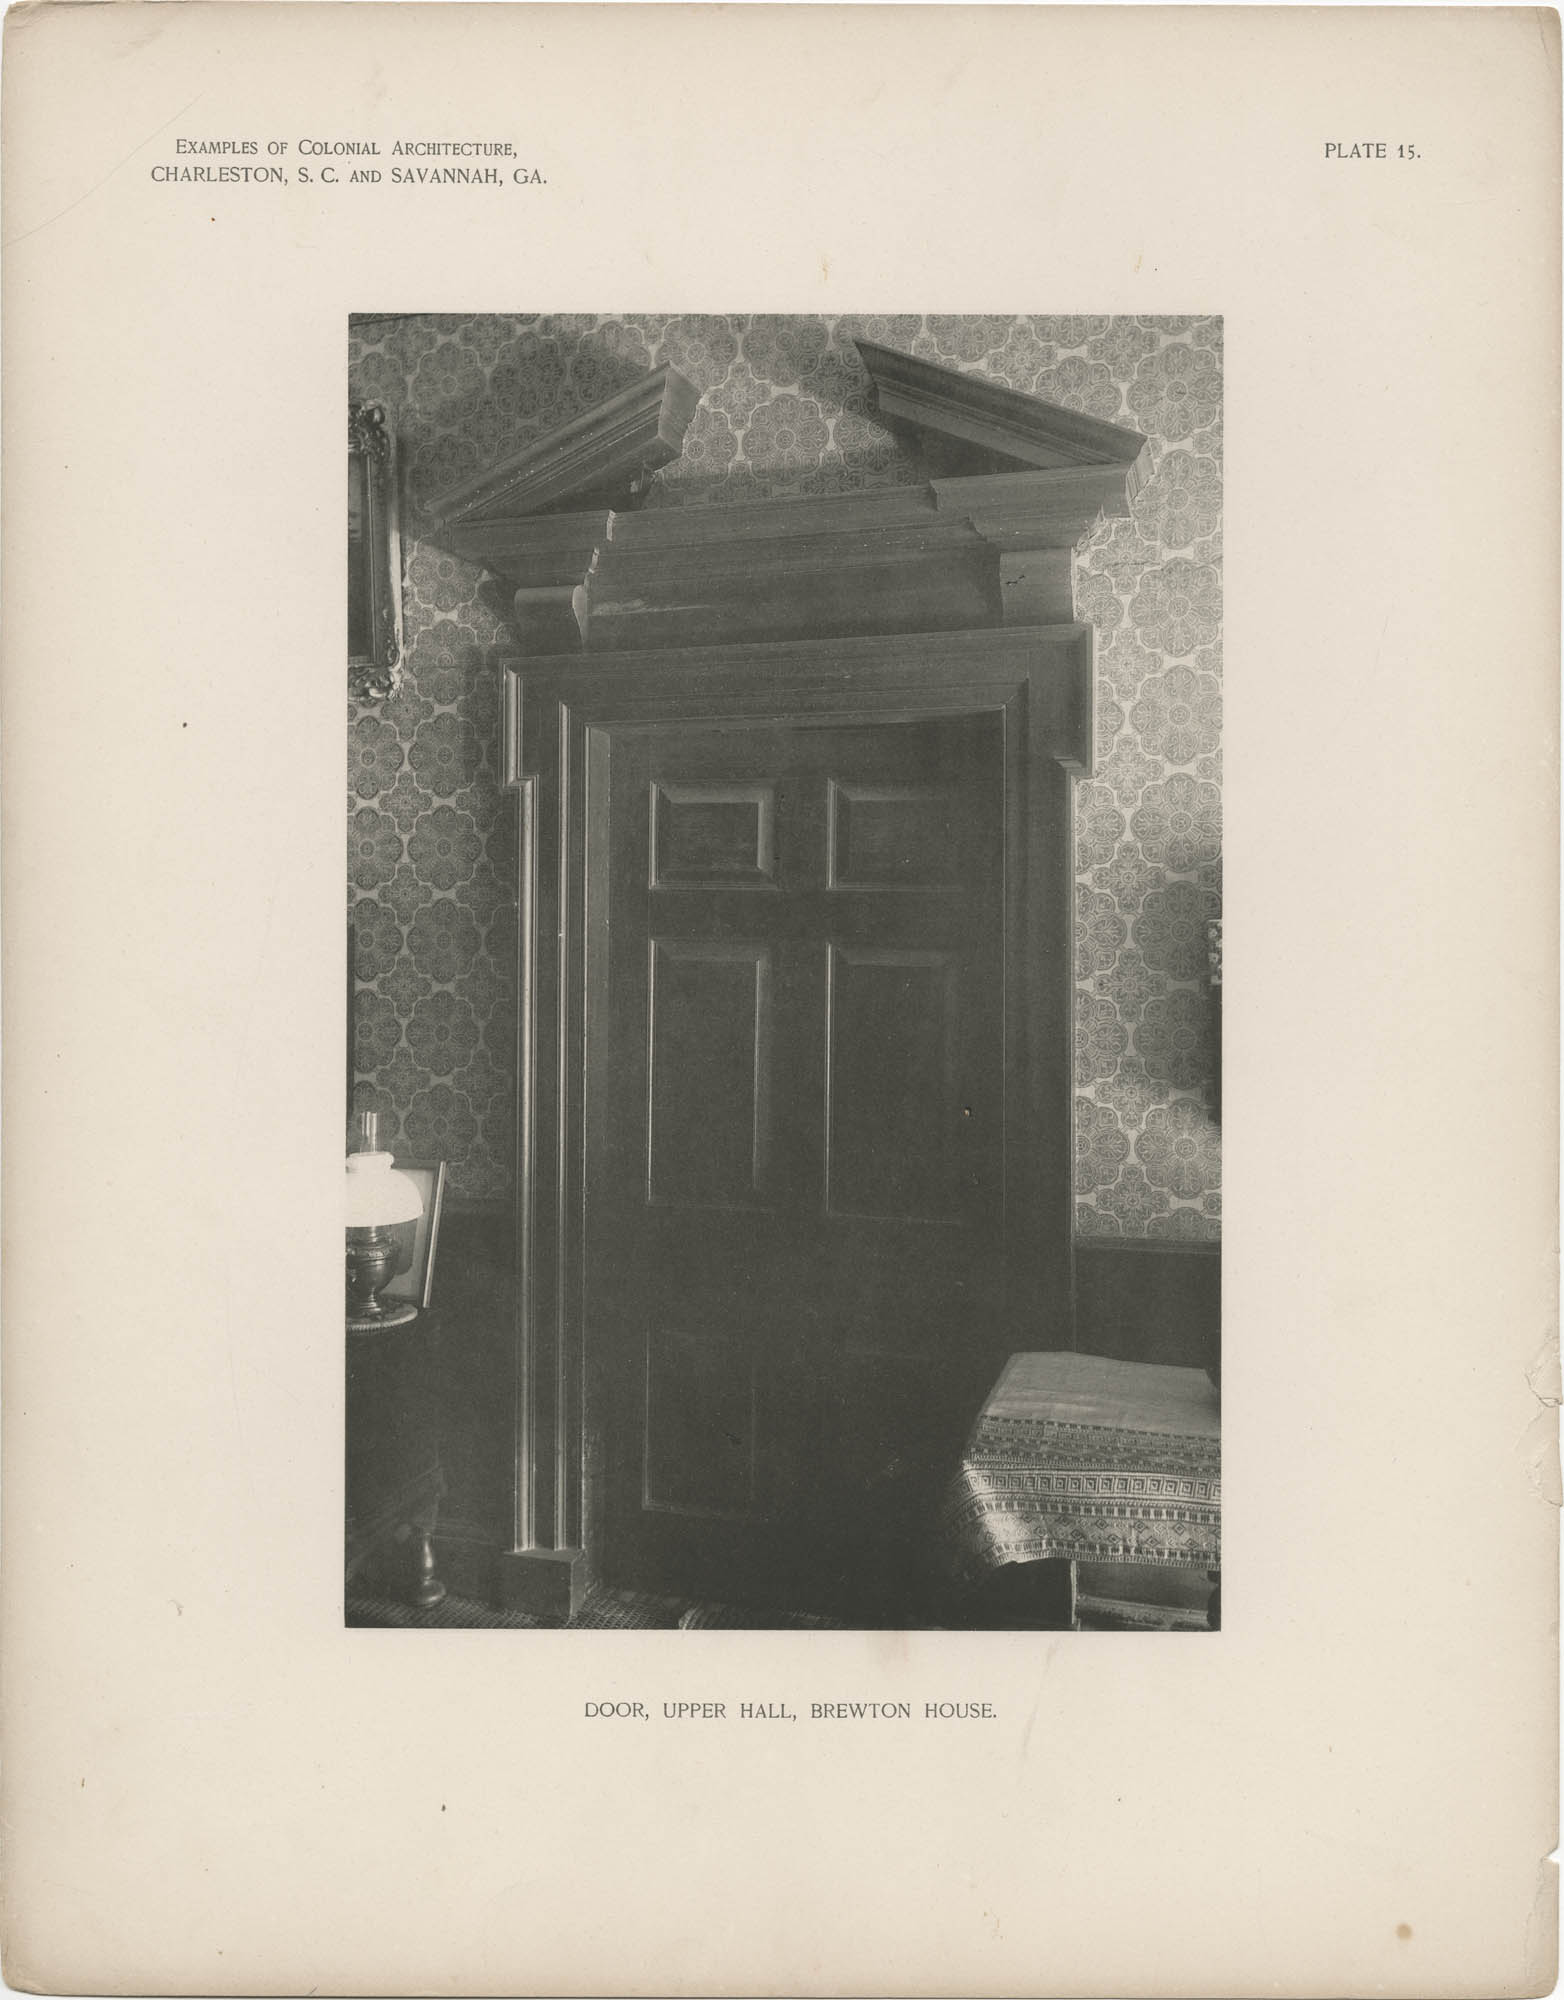 Plate 15: Door, Upper Hall, Brewton House